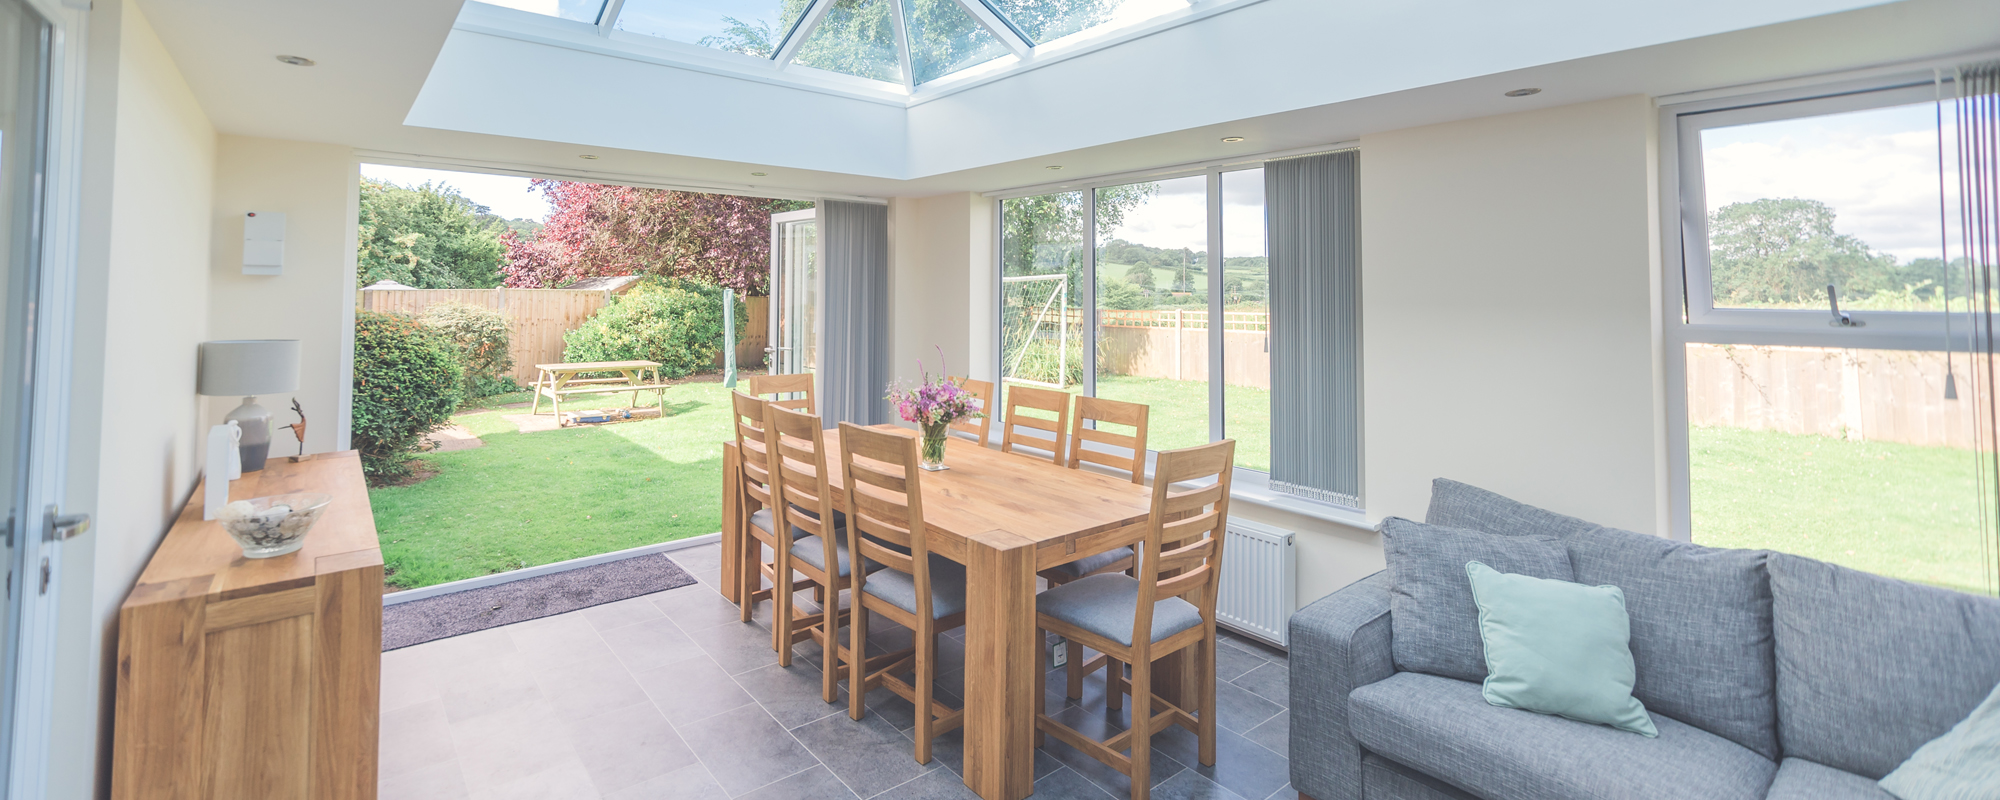 New Conservatories Doors Amp Windows Village